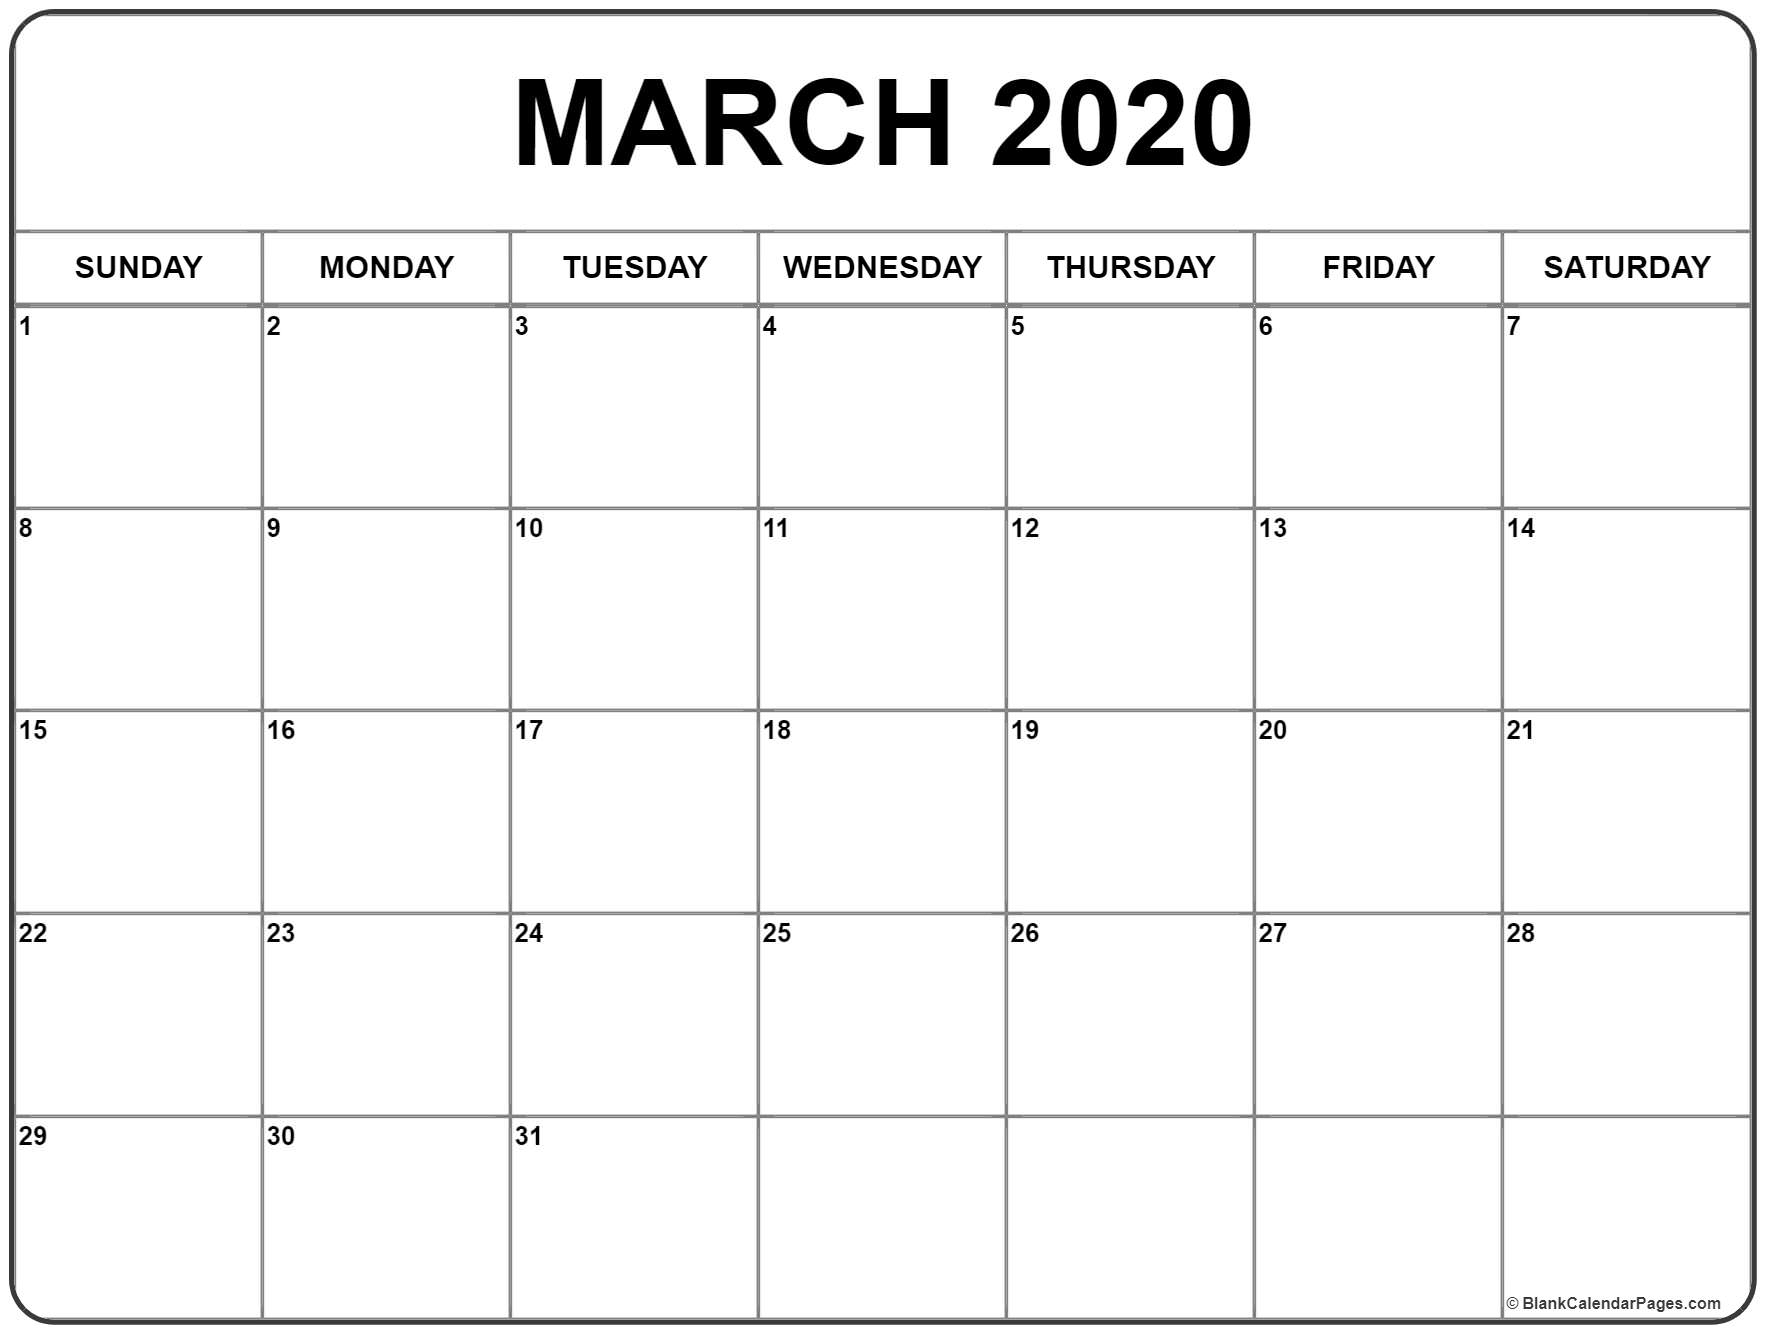 March 2020 Calendar | Free Printable Monthly Calendars throughout 2020 Calendar Printable Free With Added Oicture